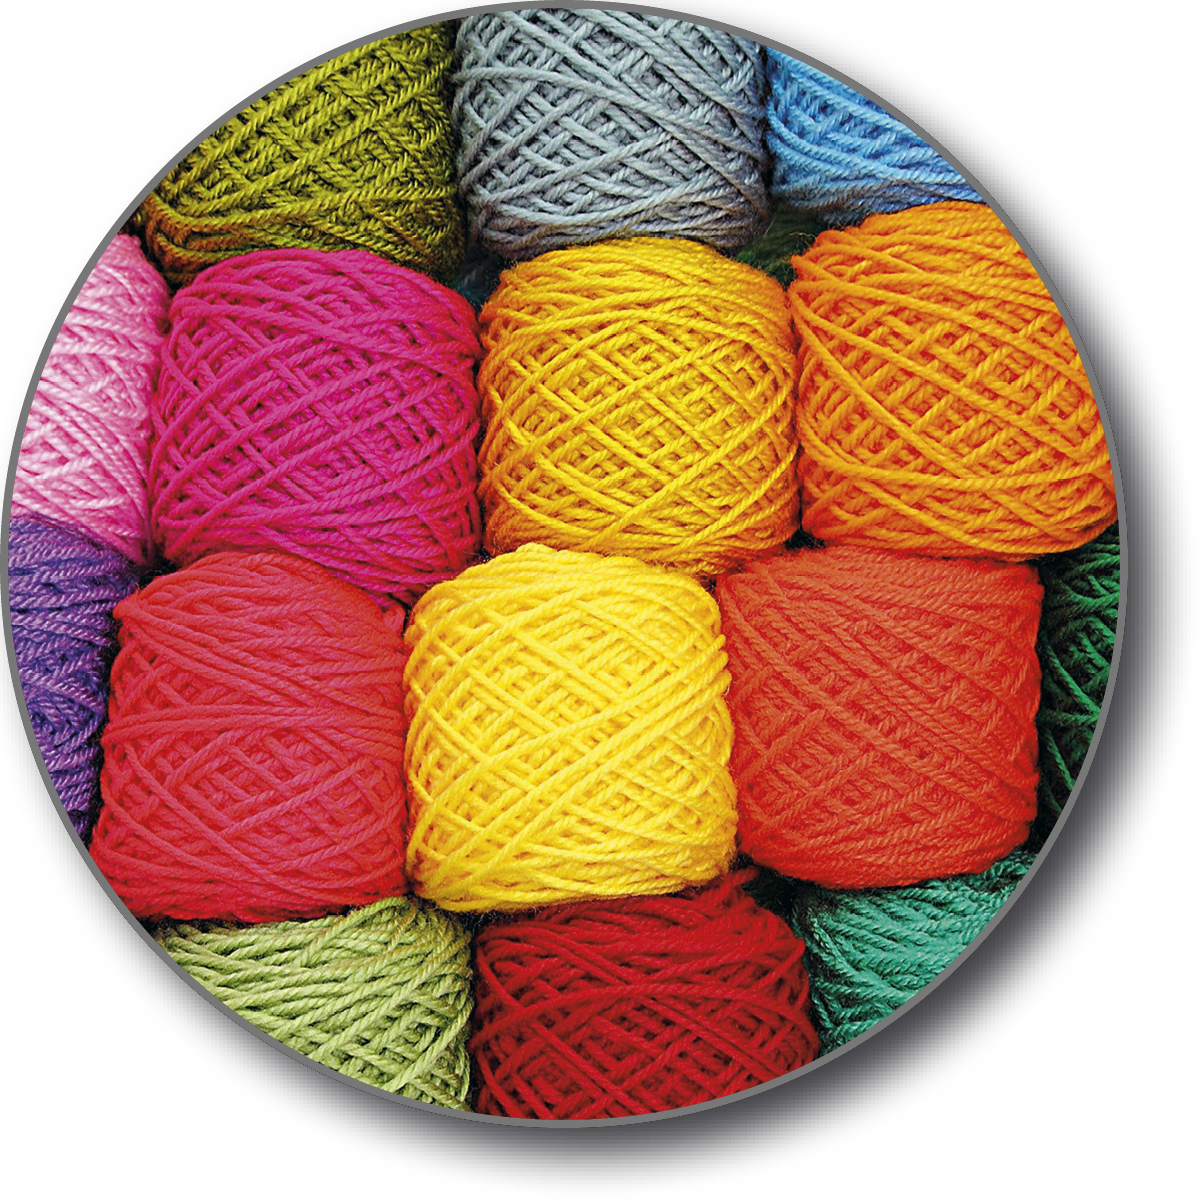 Yarn Crafters meet Sep 13 & 27